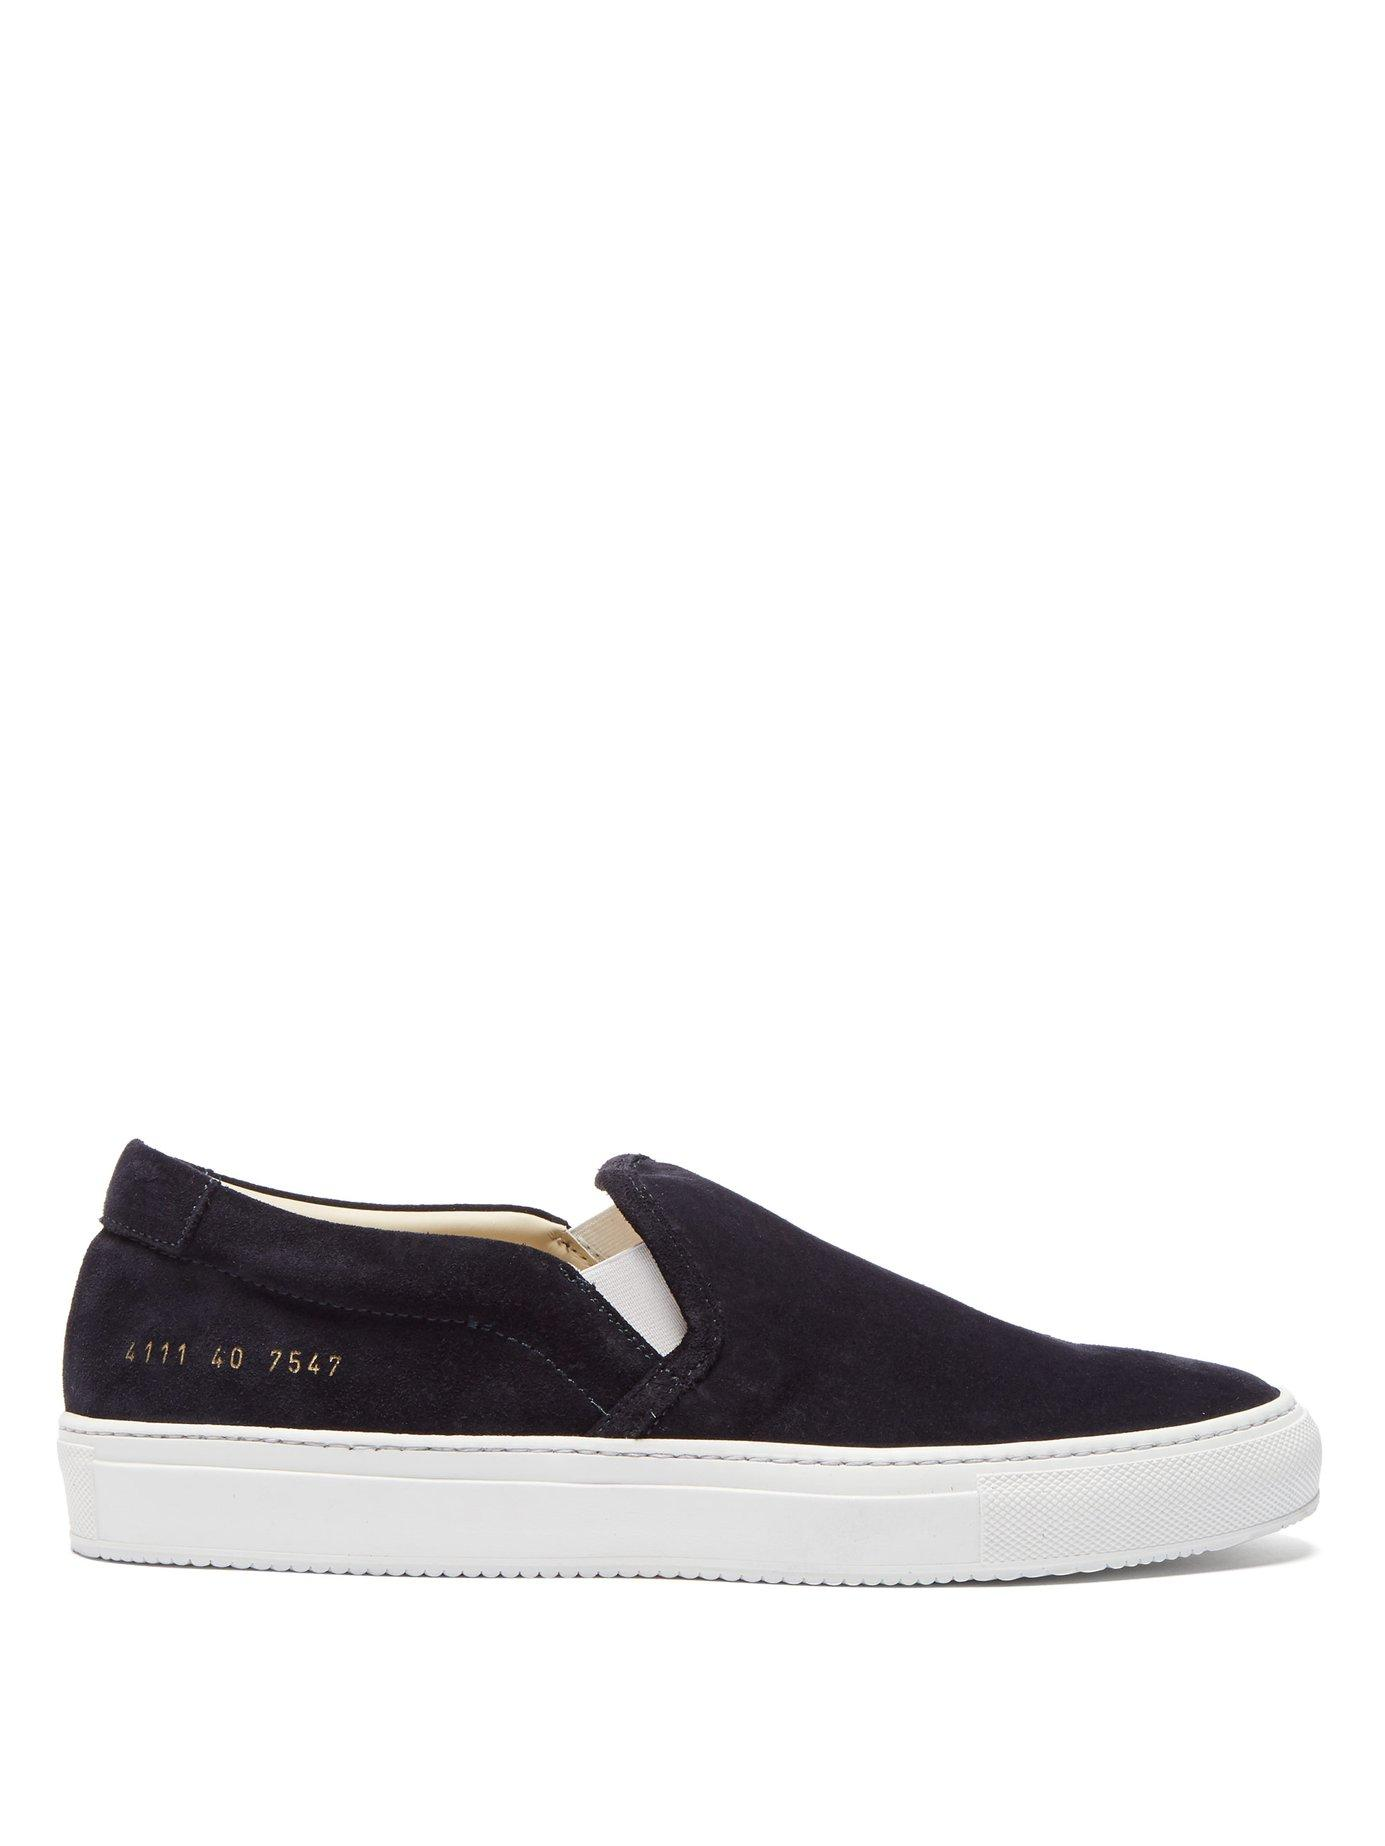 51c5304ee2d2 Lyst - Common Projects Slip On Low Top Suede Trainers in Black